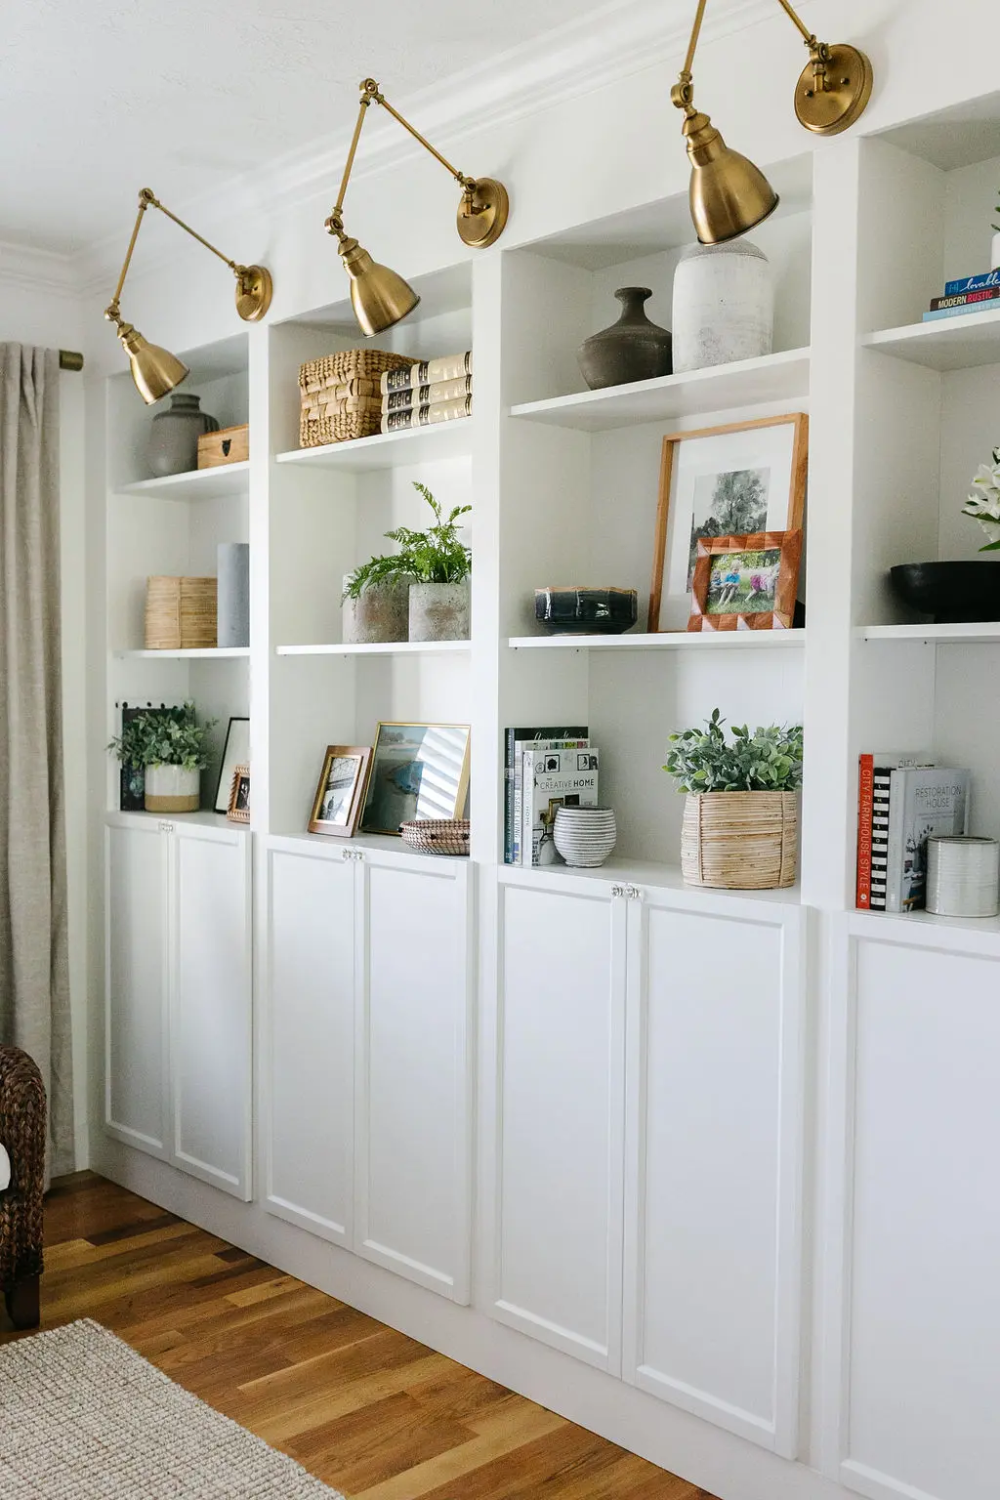 IKEA Billy Bookcase Hack - Wall Of Built-ins